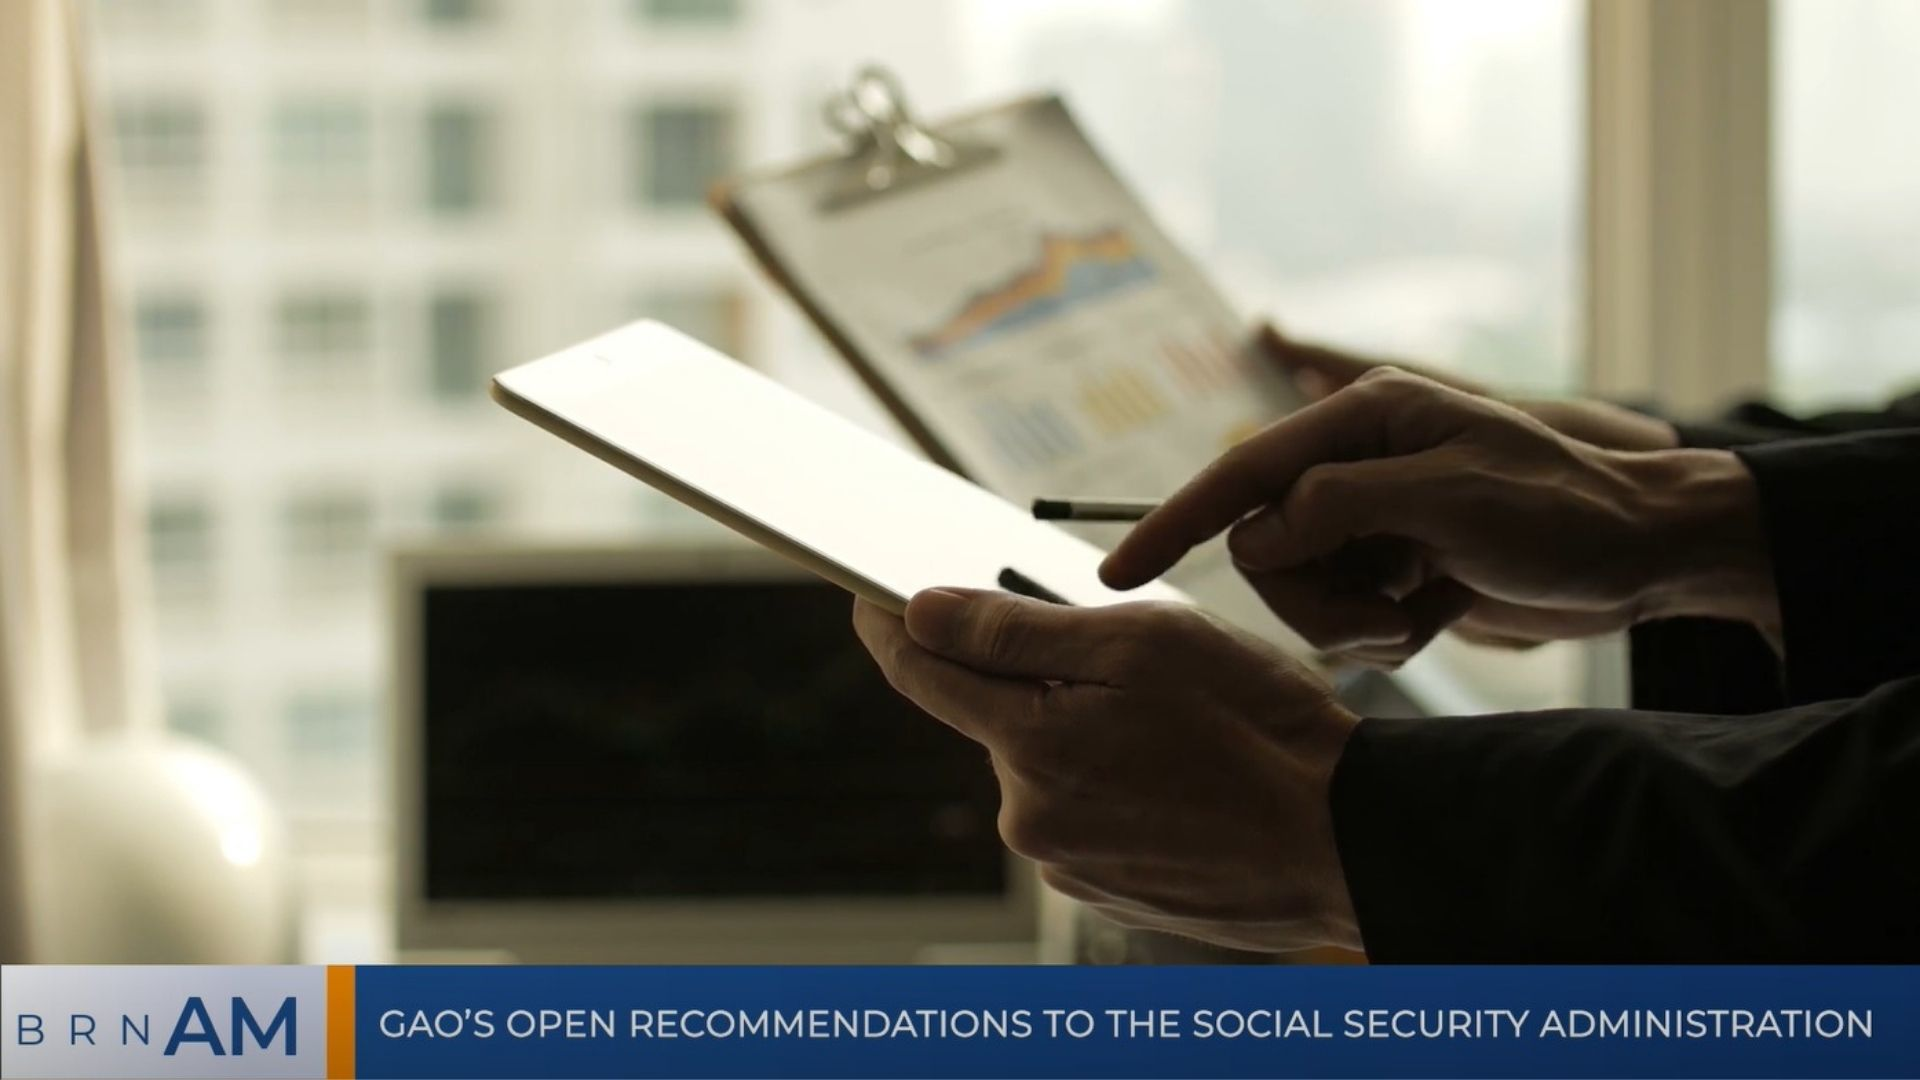 BRN AM   GAO's open recommendations to the Social Security Administration